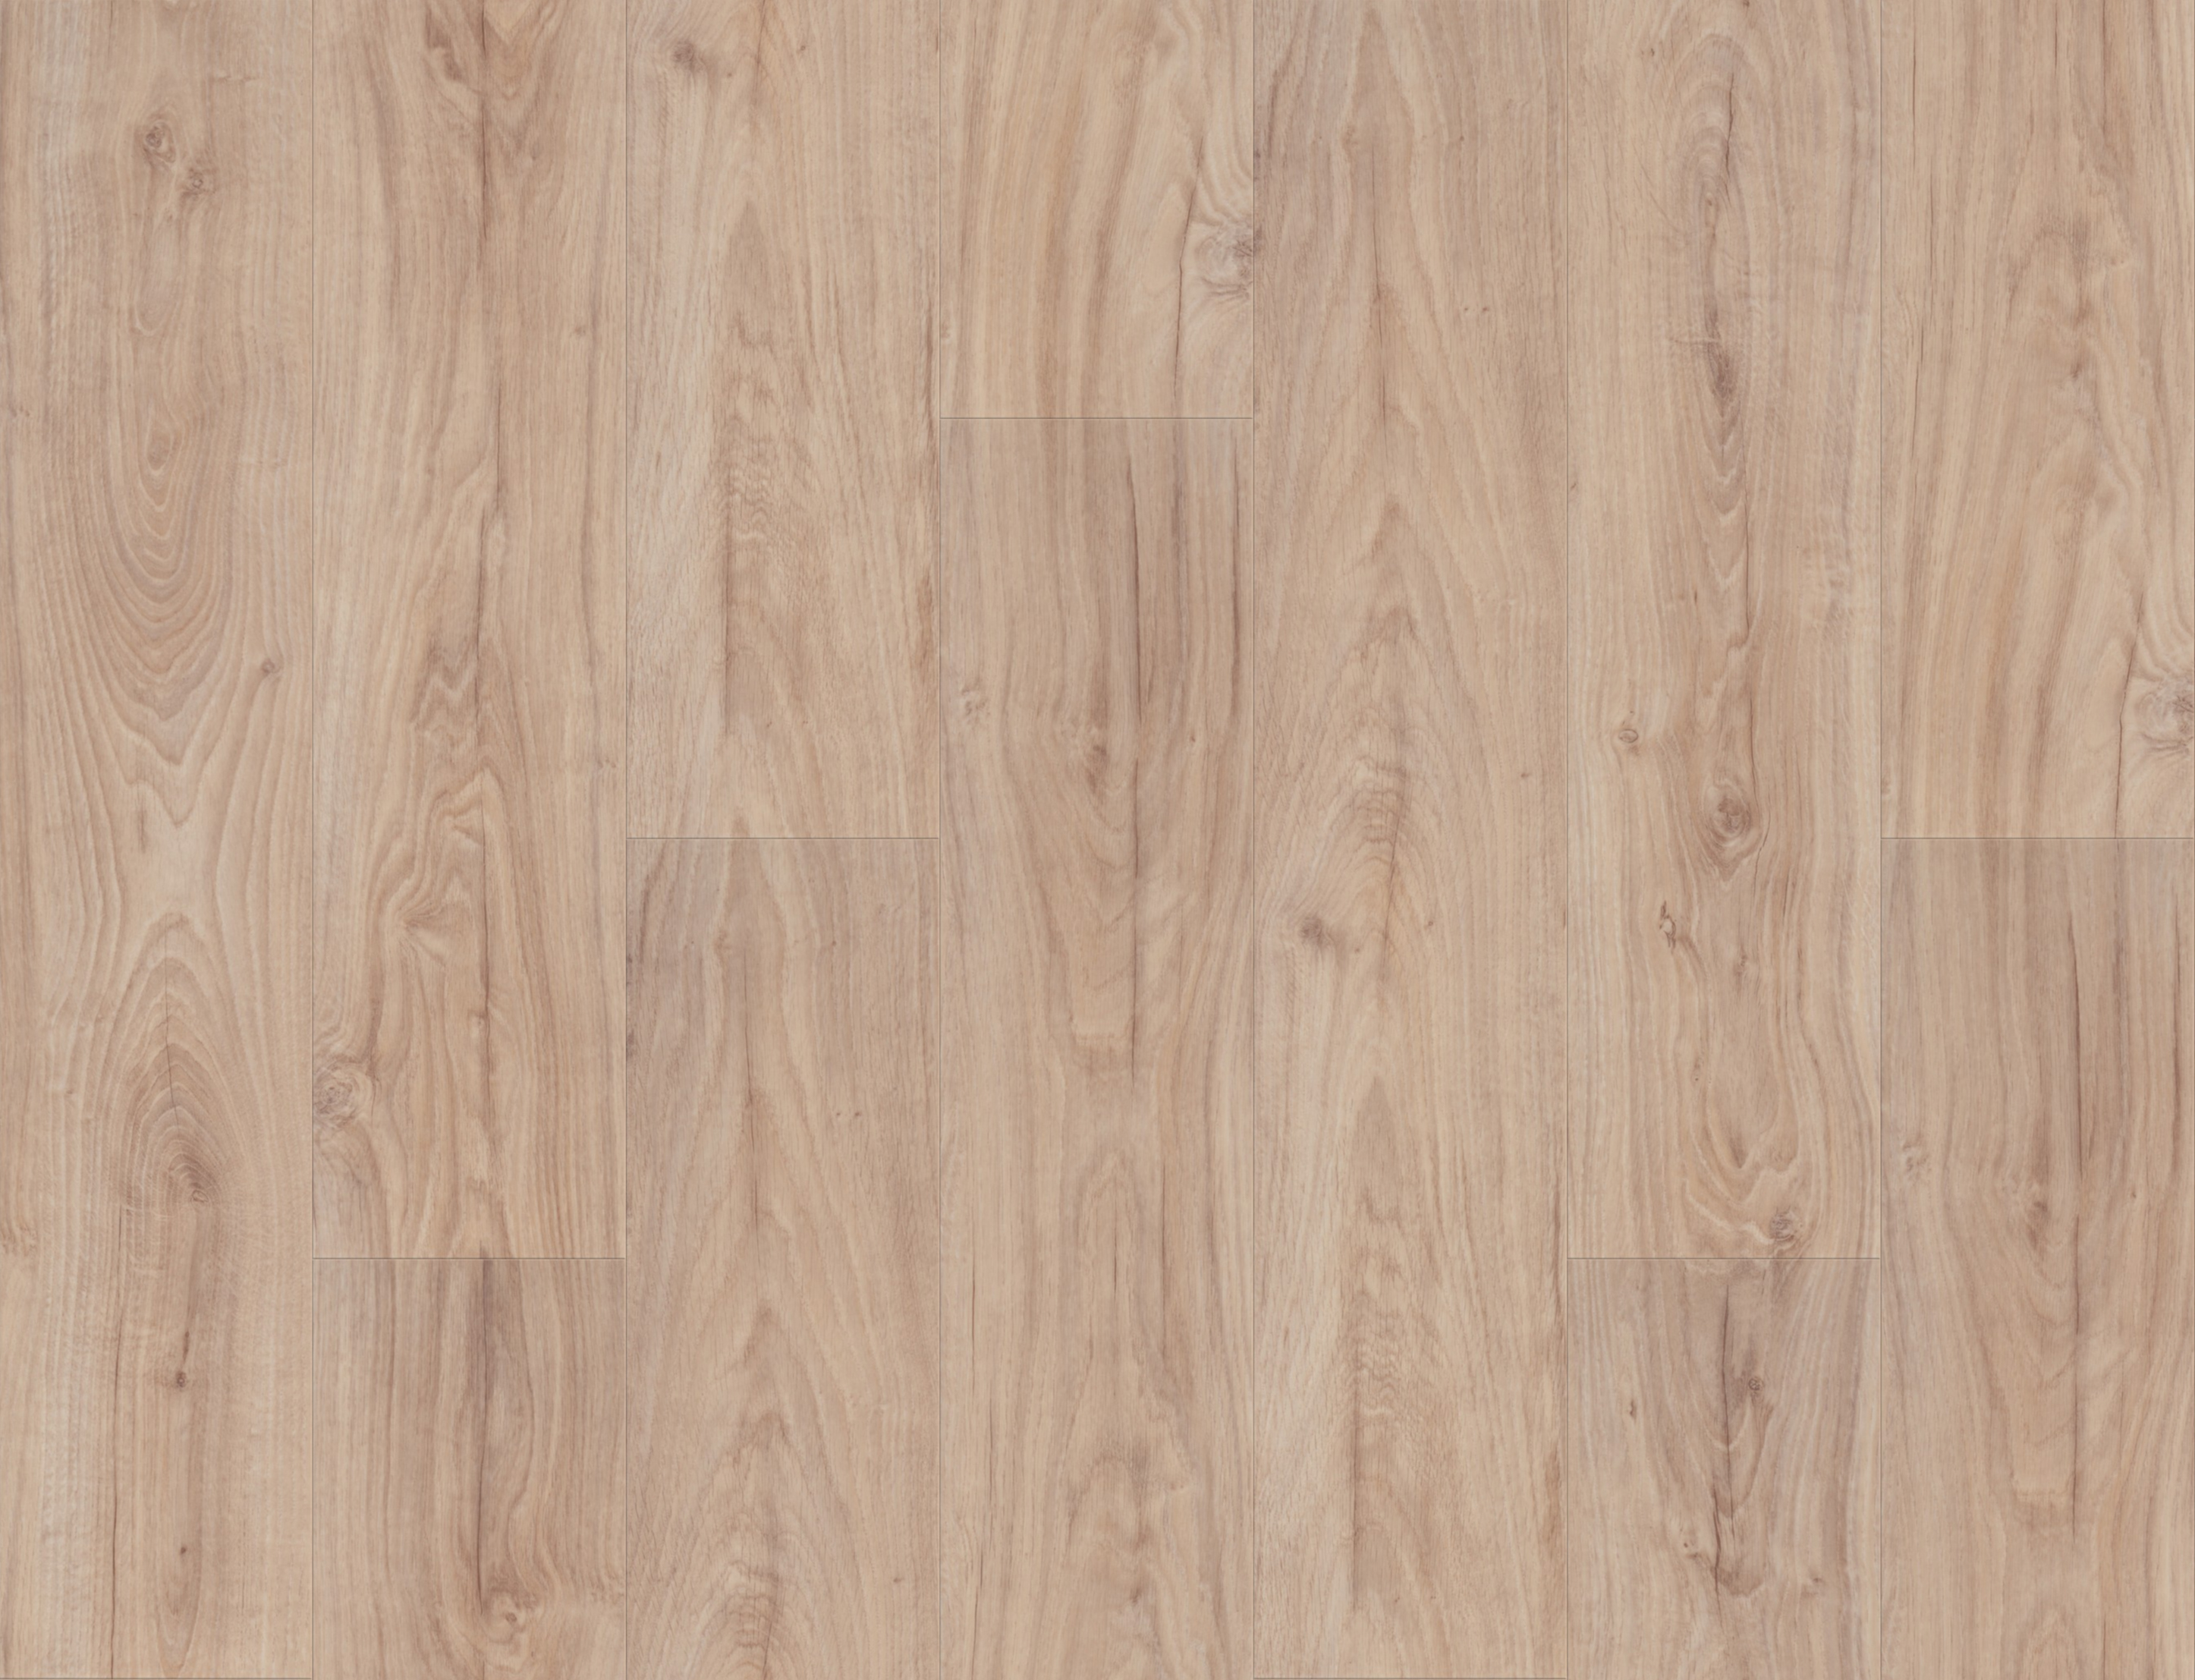 Allura Flex Wood loose lay tiles | Forbo Flooring Systems